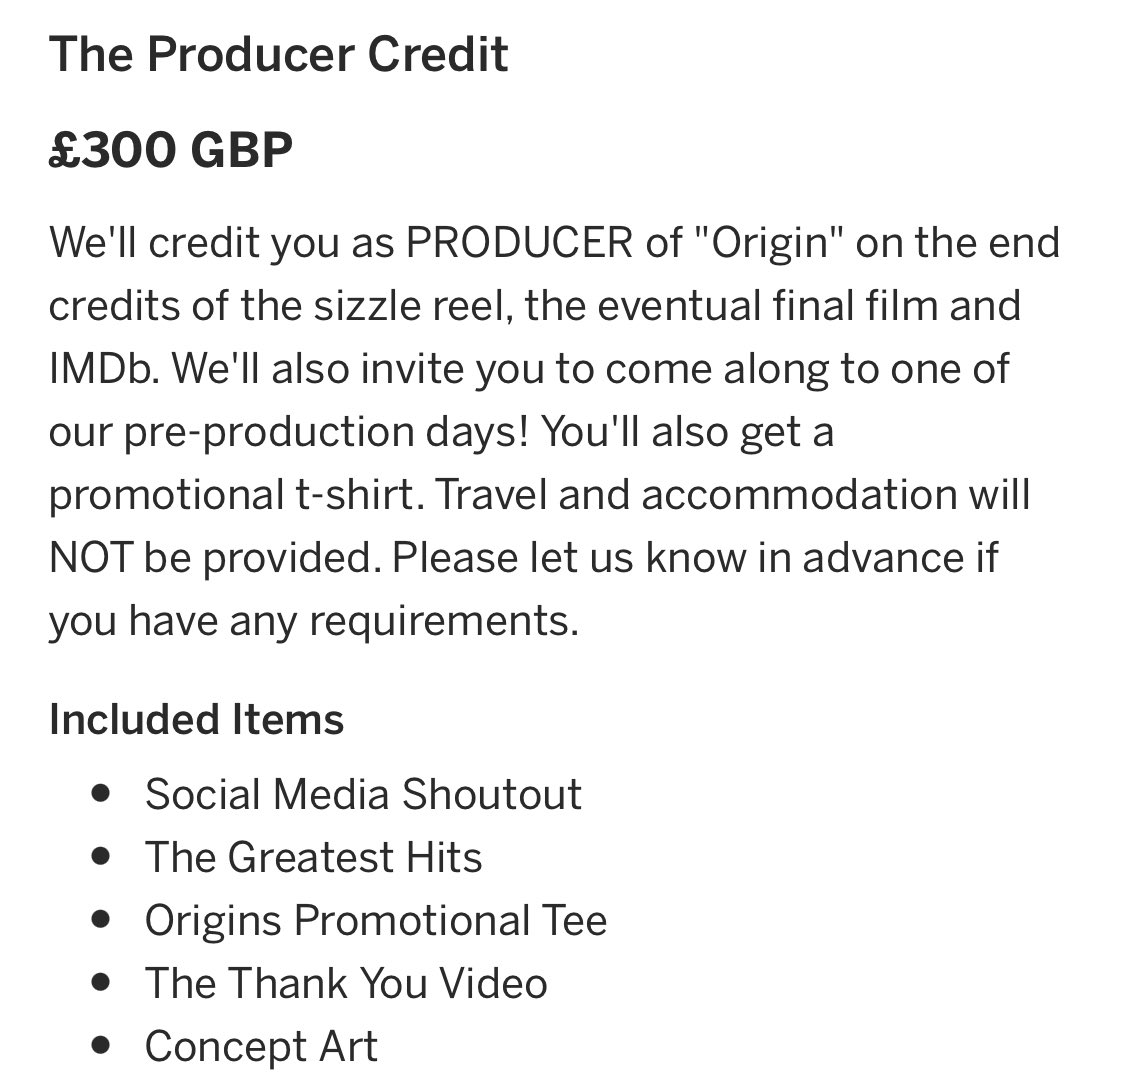 11 Producer perks & 7 Executive perks left at https://t.co/vRmNk9nqdj we would be able to do SO much if we sold these remaining perks! #indiefilm #womeninfilm #producer #scottish #wynonnaearp #scotland #outlander #crowdfunding #podernfamily #tvshows https://t.co/n1nqOdI0Qp